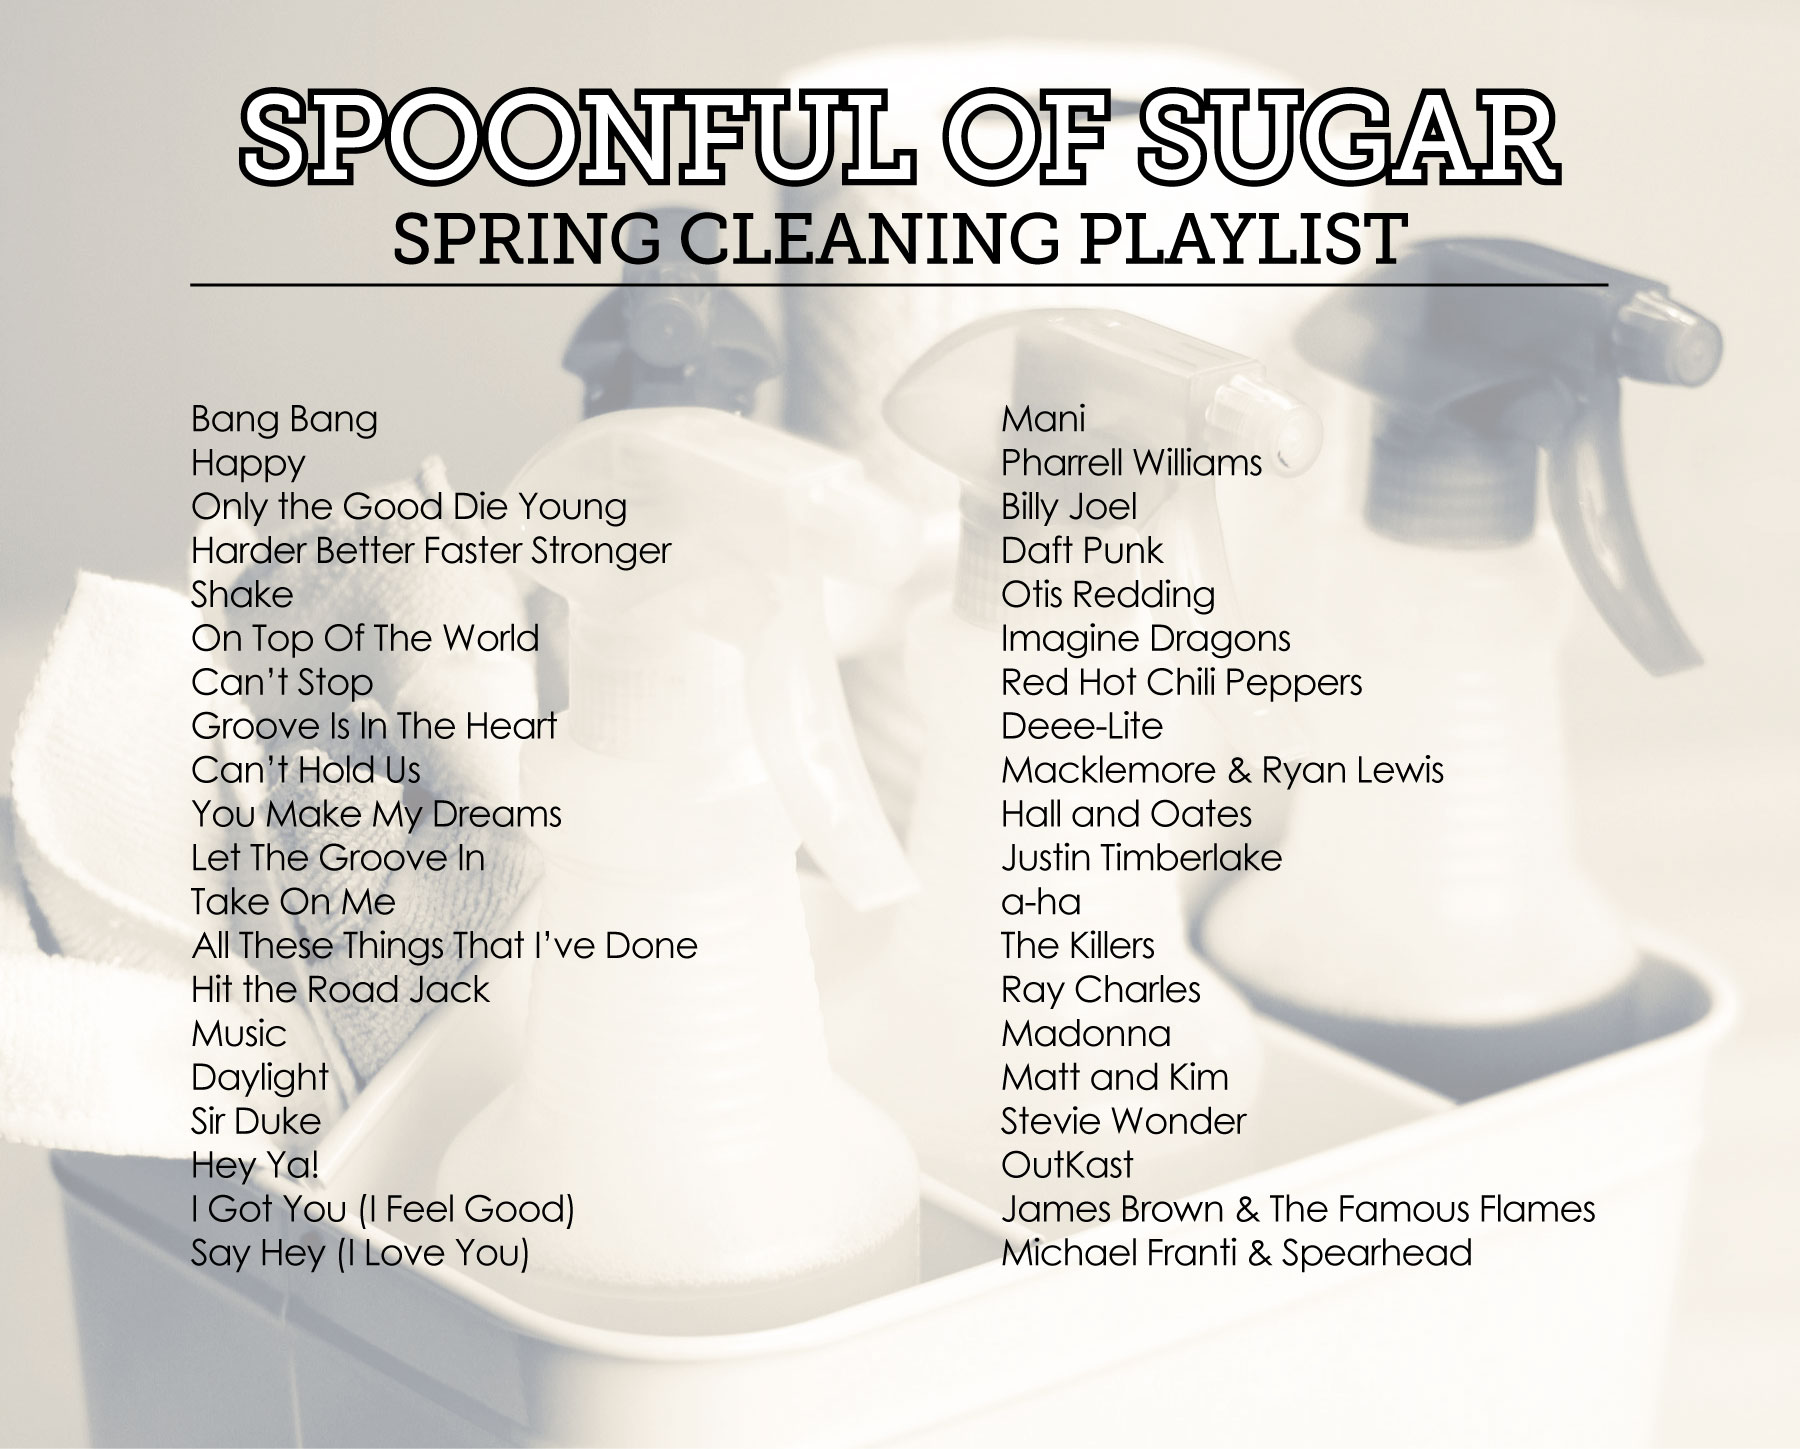 Spoonful of Sugar: Spring Cleaning Playlist by Sam Henderson of Today's Nest